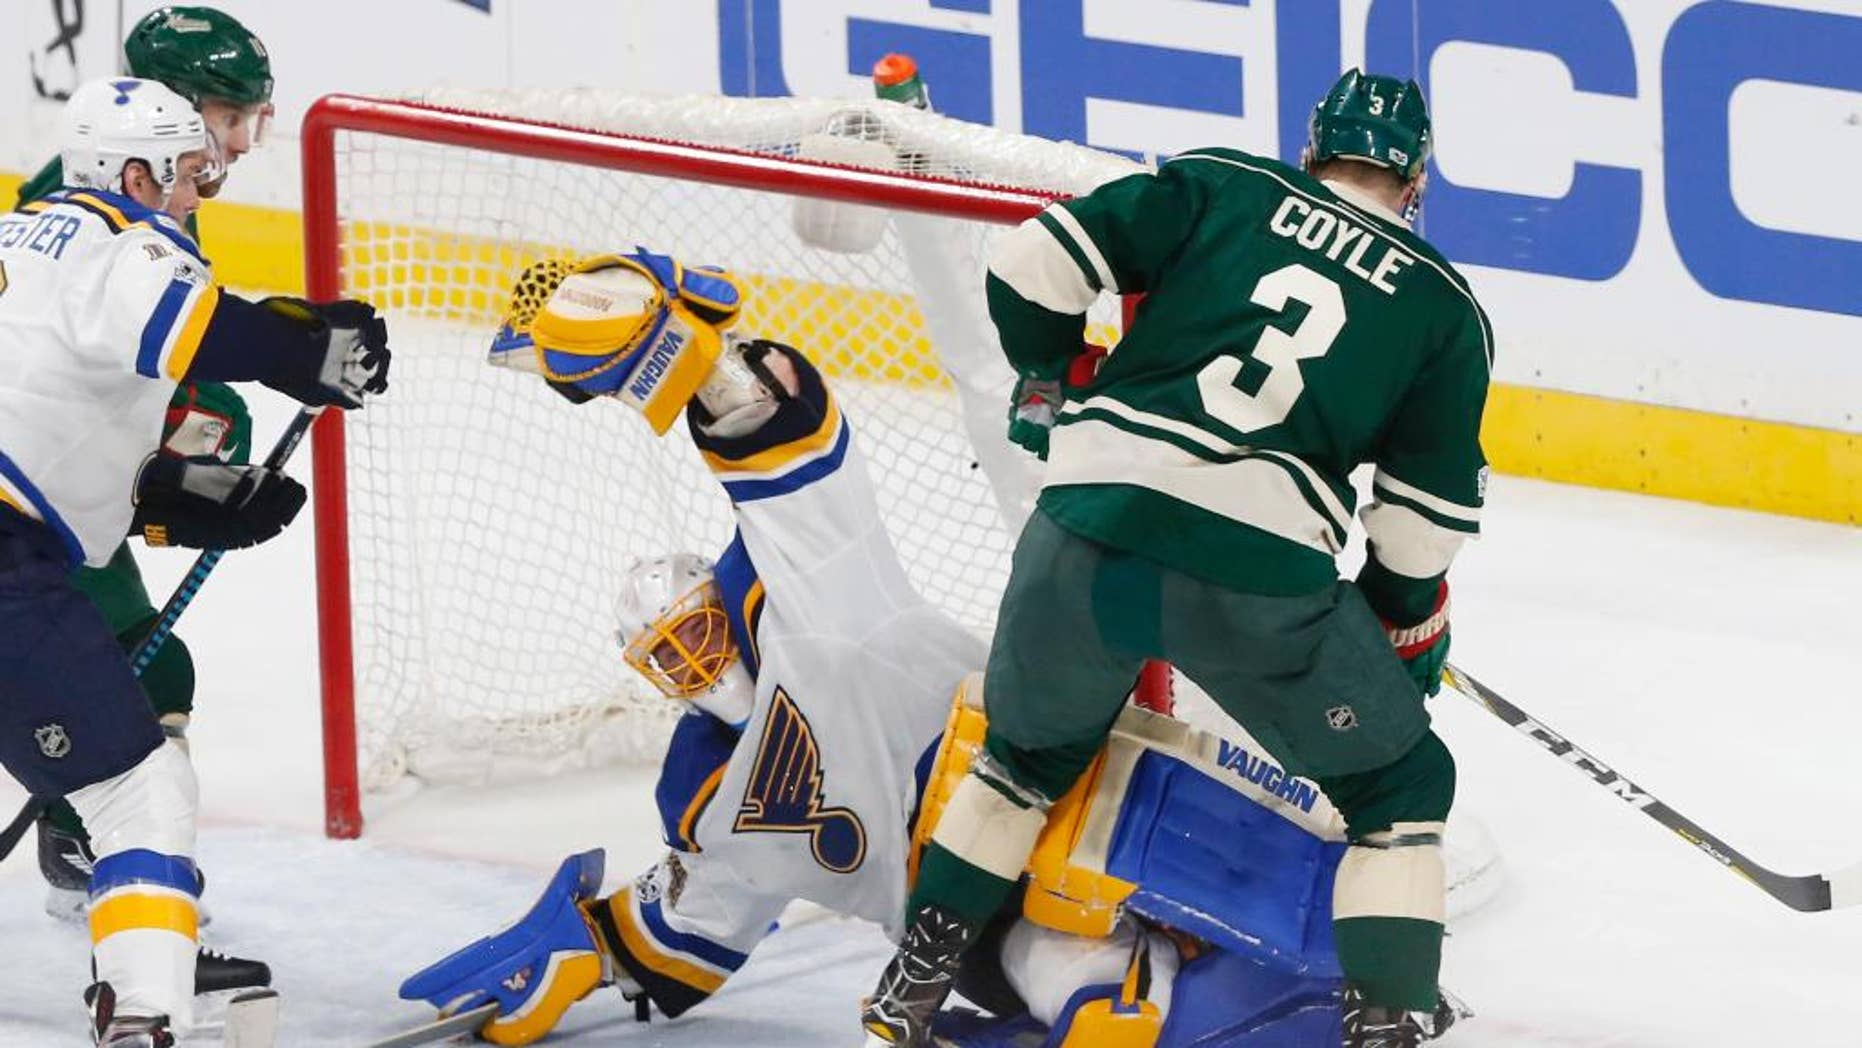 St. Louis Blues goalie Jake Allen stops a shot by Minnesota Wild's Charlie Coyle, right, during the second period of Game 1 of an NHL hockey first-round playoff series Wednesday, April 12, 2017, in St. Paul, Minn. (AP Photo/Jim Mone)